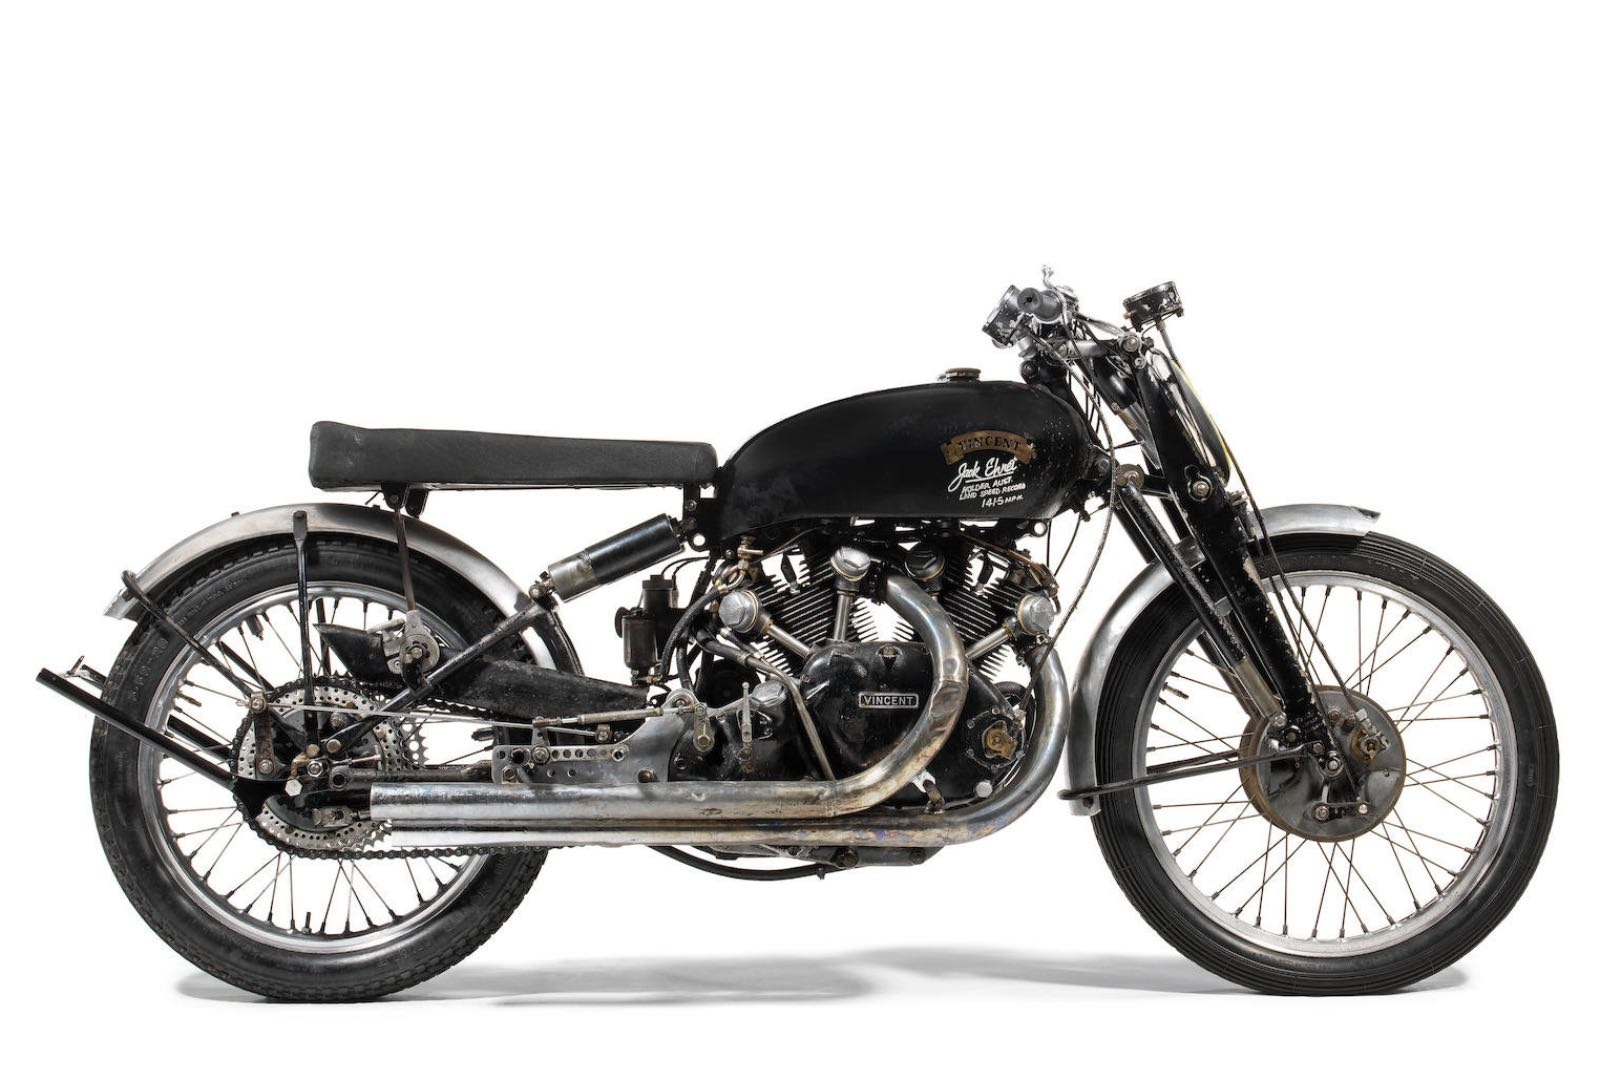 Top 10 Most Valuable Motorcycles: 1951 Vincent Black Lightning Tops List